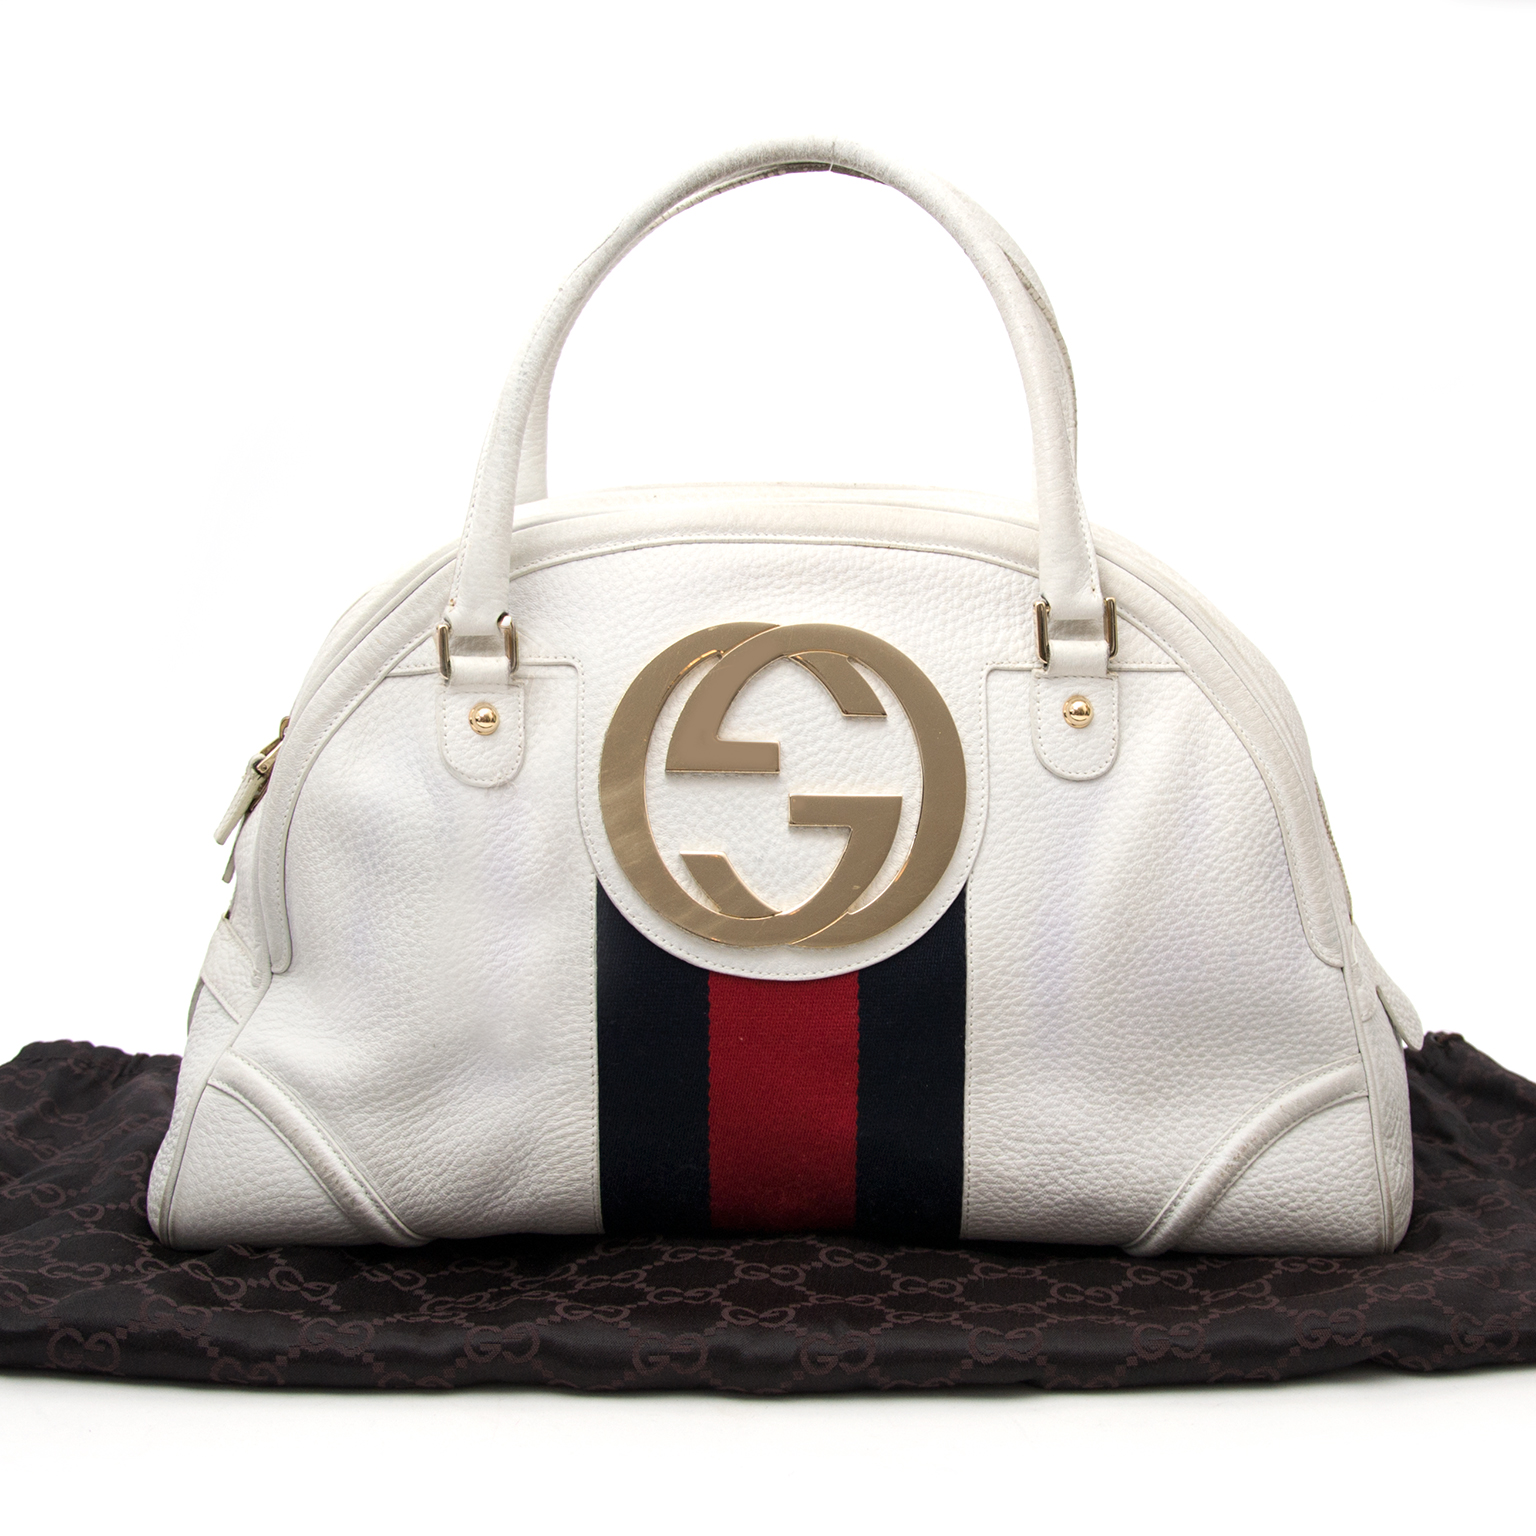 We buy and sell your authentic Gucci Monogram Web Bowling Bags for the best price